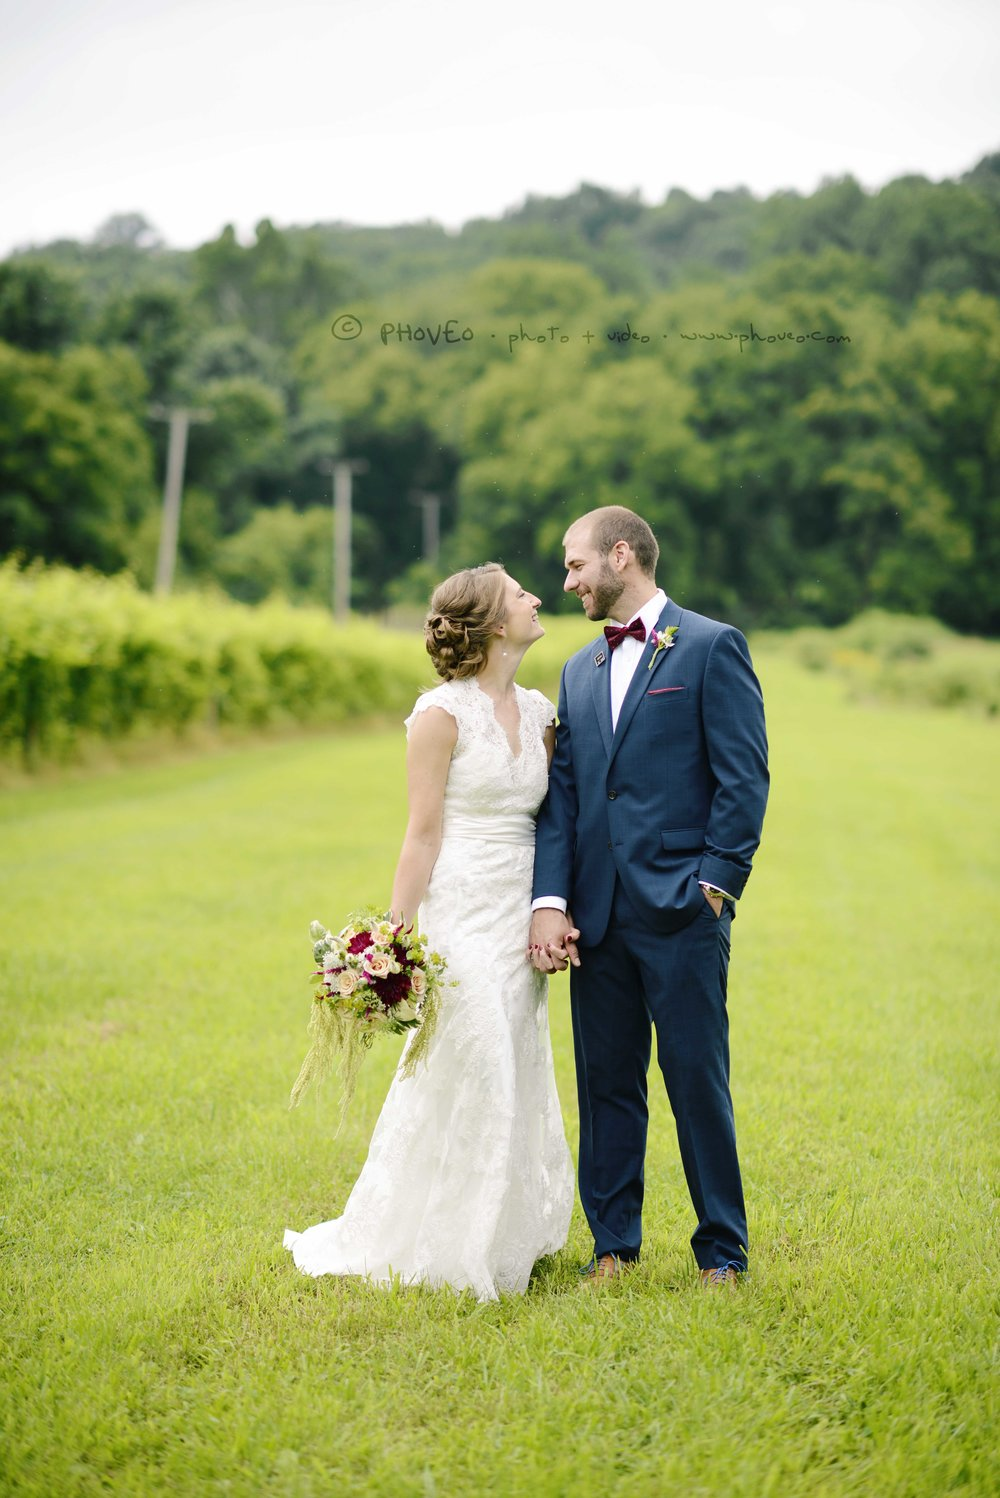 WM_20170812_Lauren+Sean_53.jpg